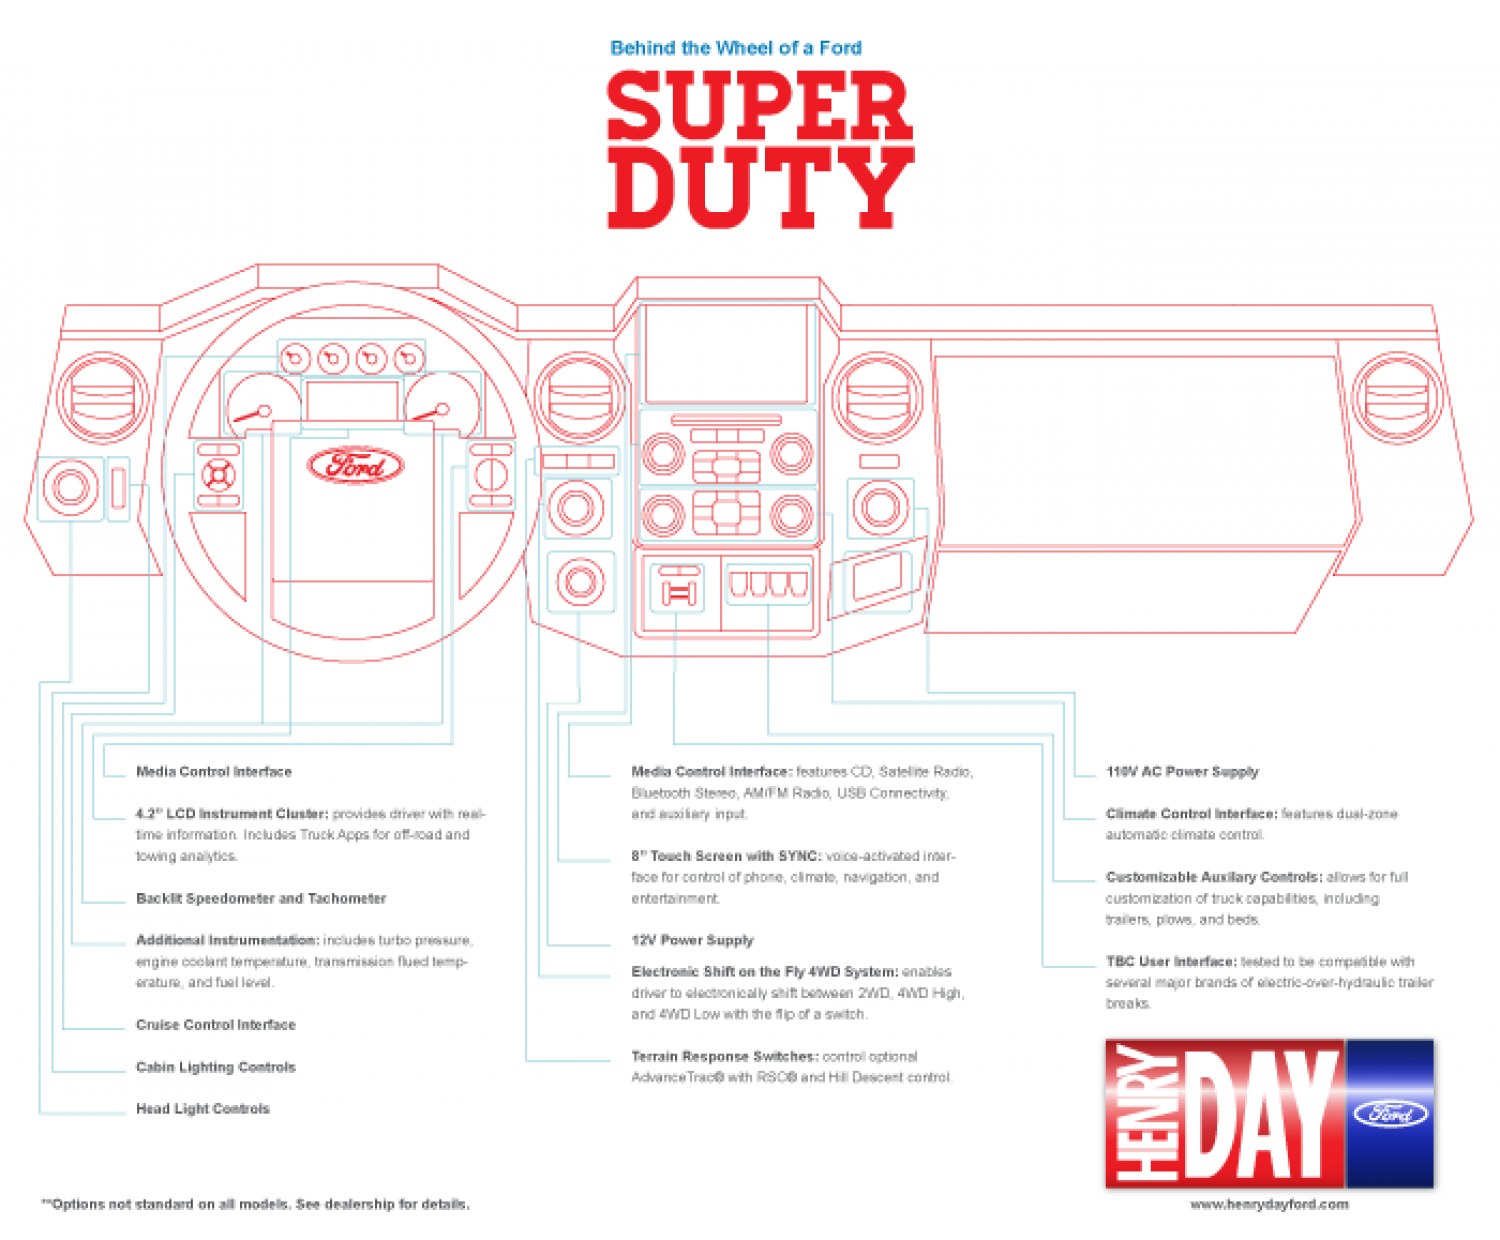 Behind the Wheel: Ford Super Duty Infographic